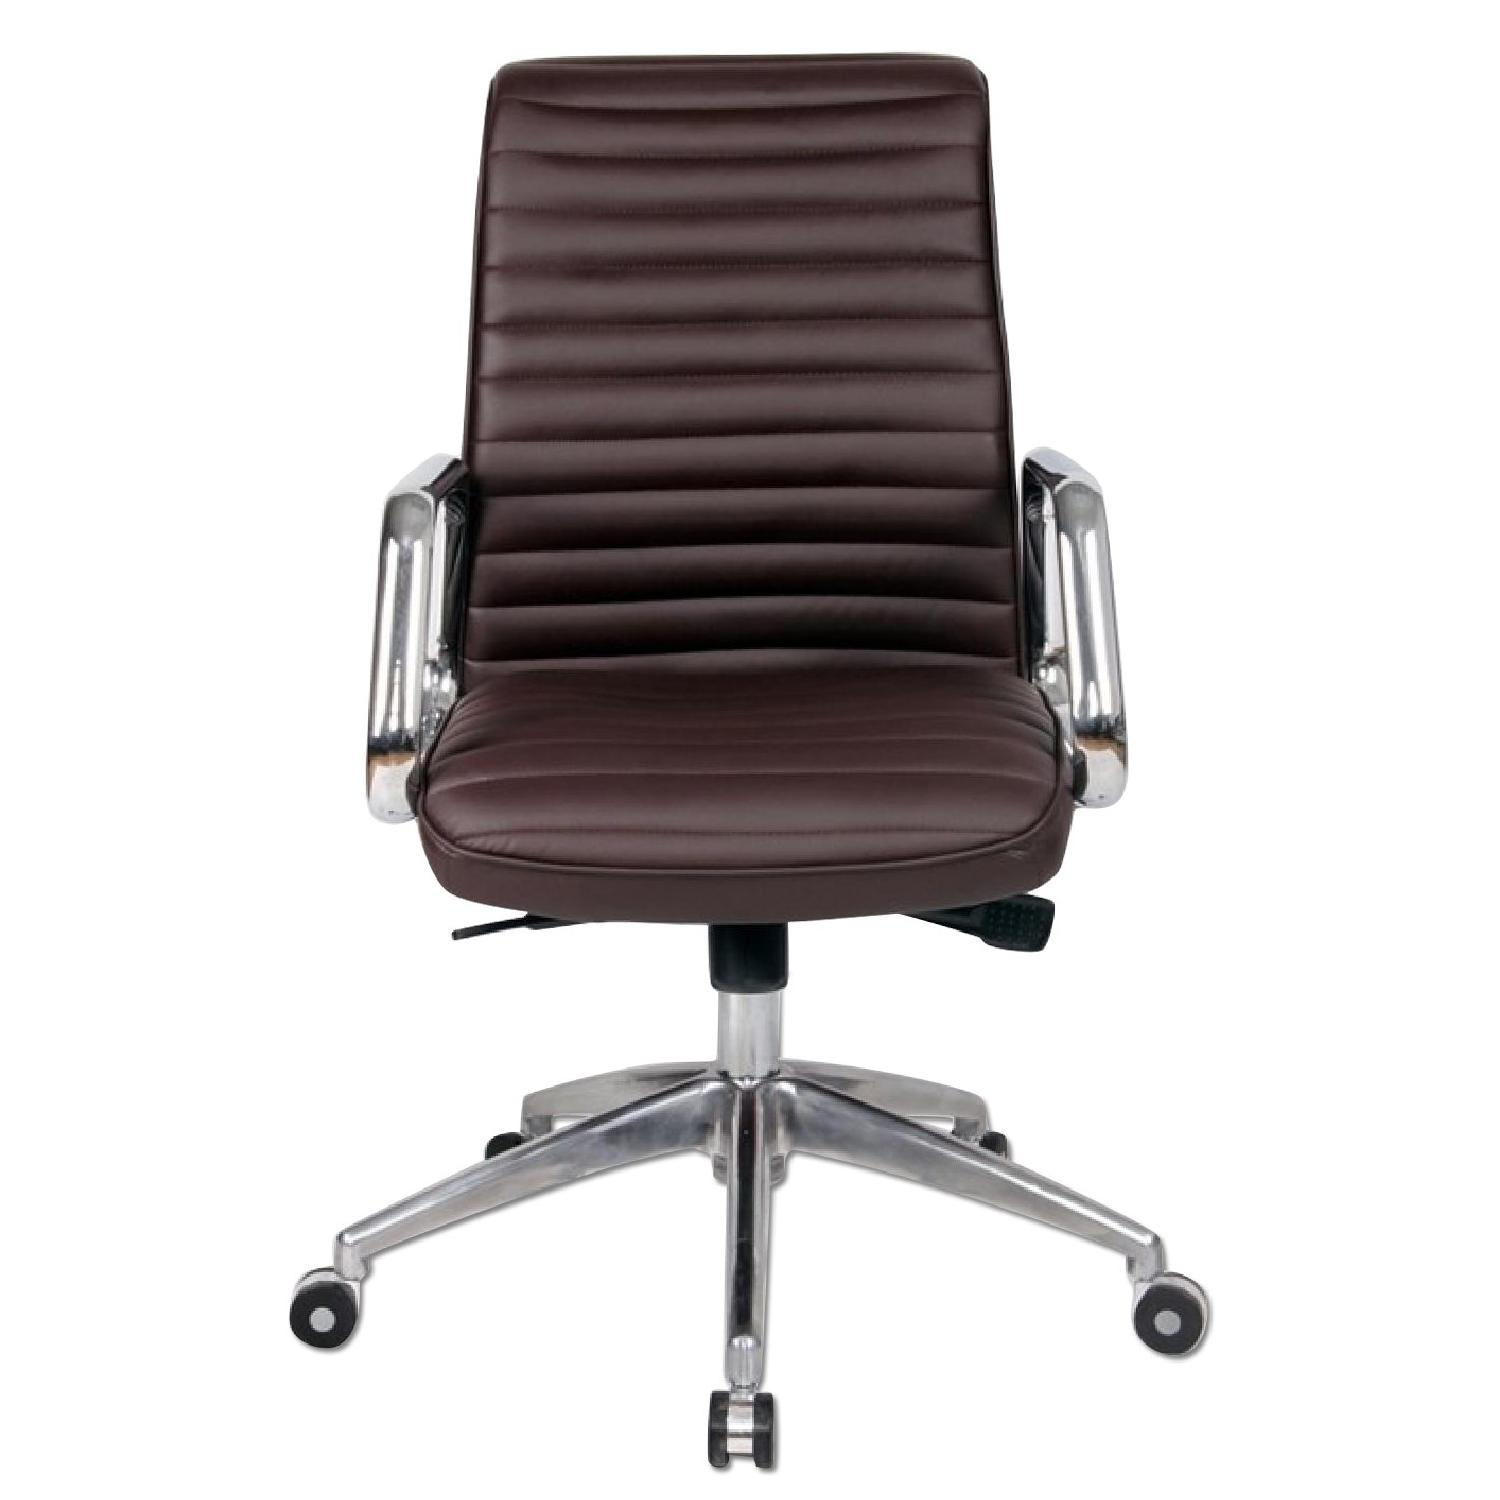 Modern Steel Frame Office Chair w/ Padded Seat & Back Uphols